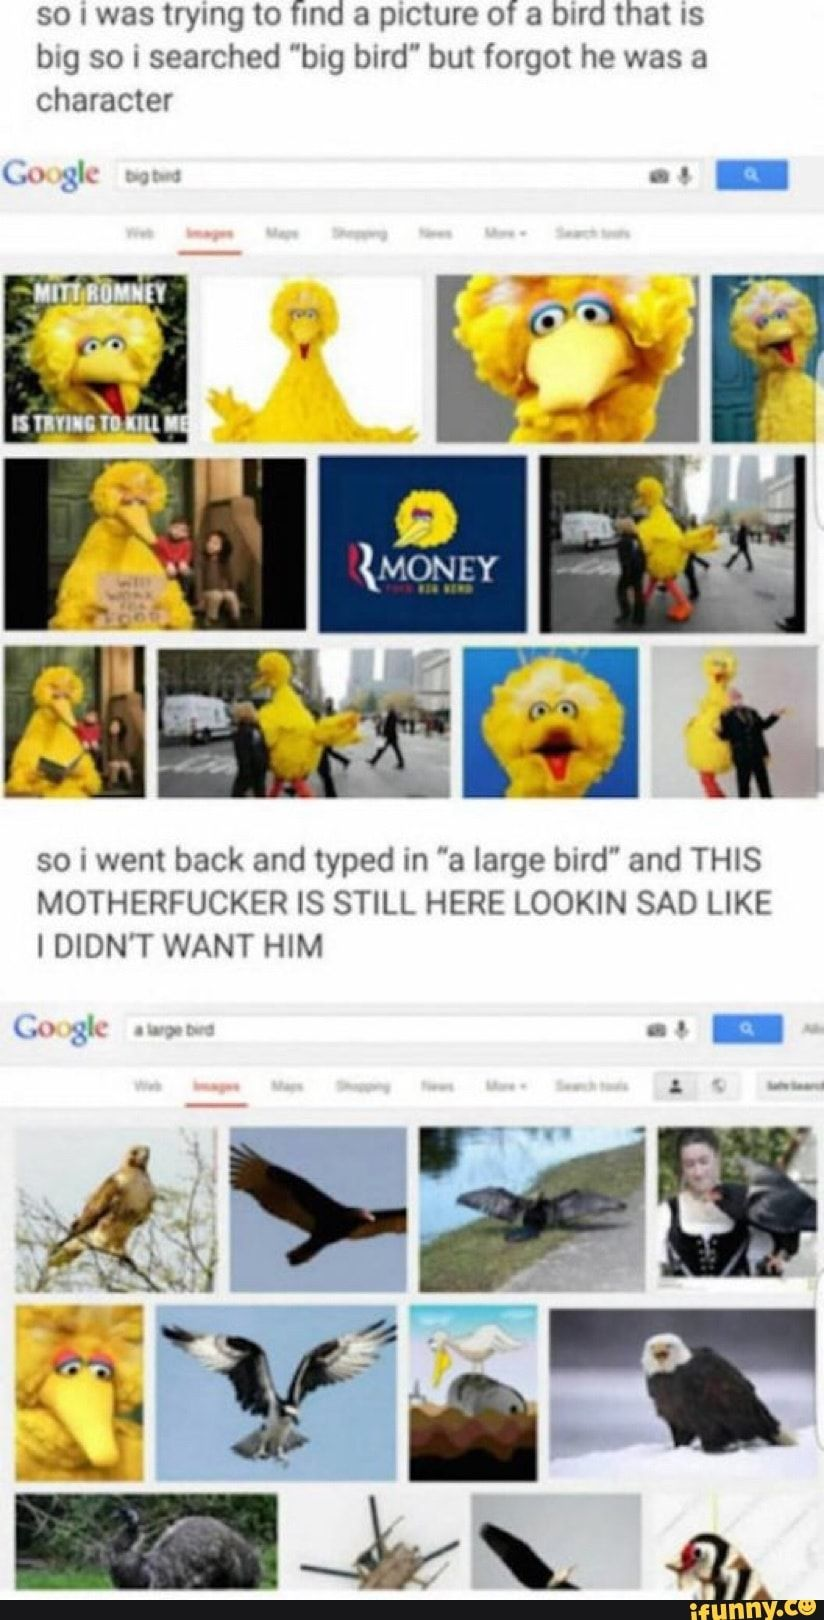 """So : was trying to find a picture of a blfd that IS blg so I searched """"blg bard"""